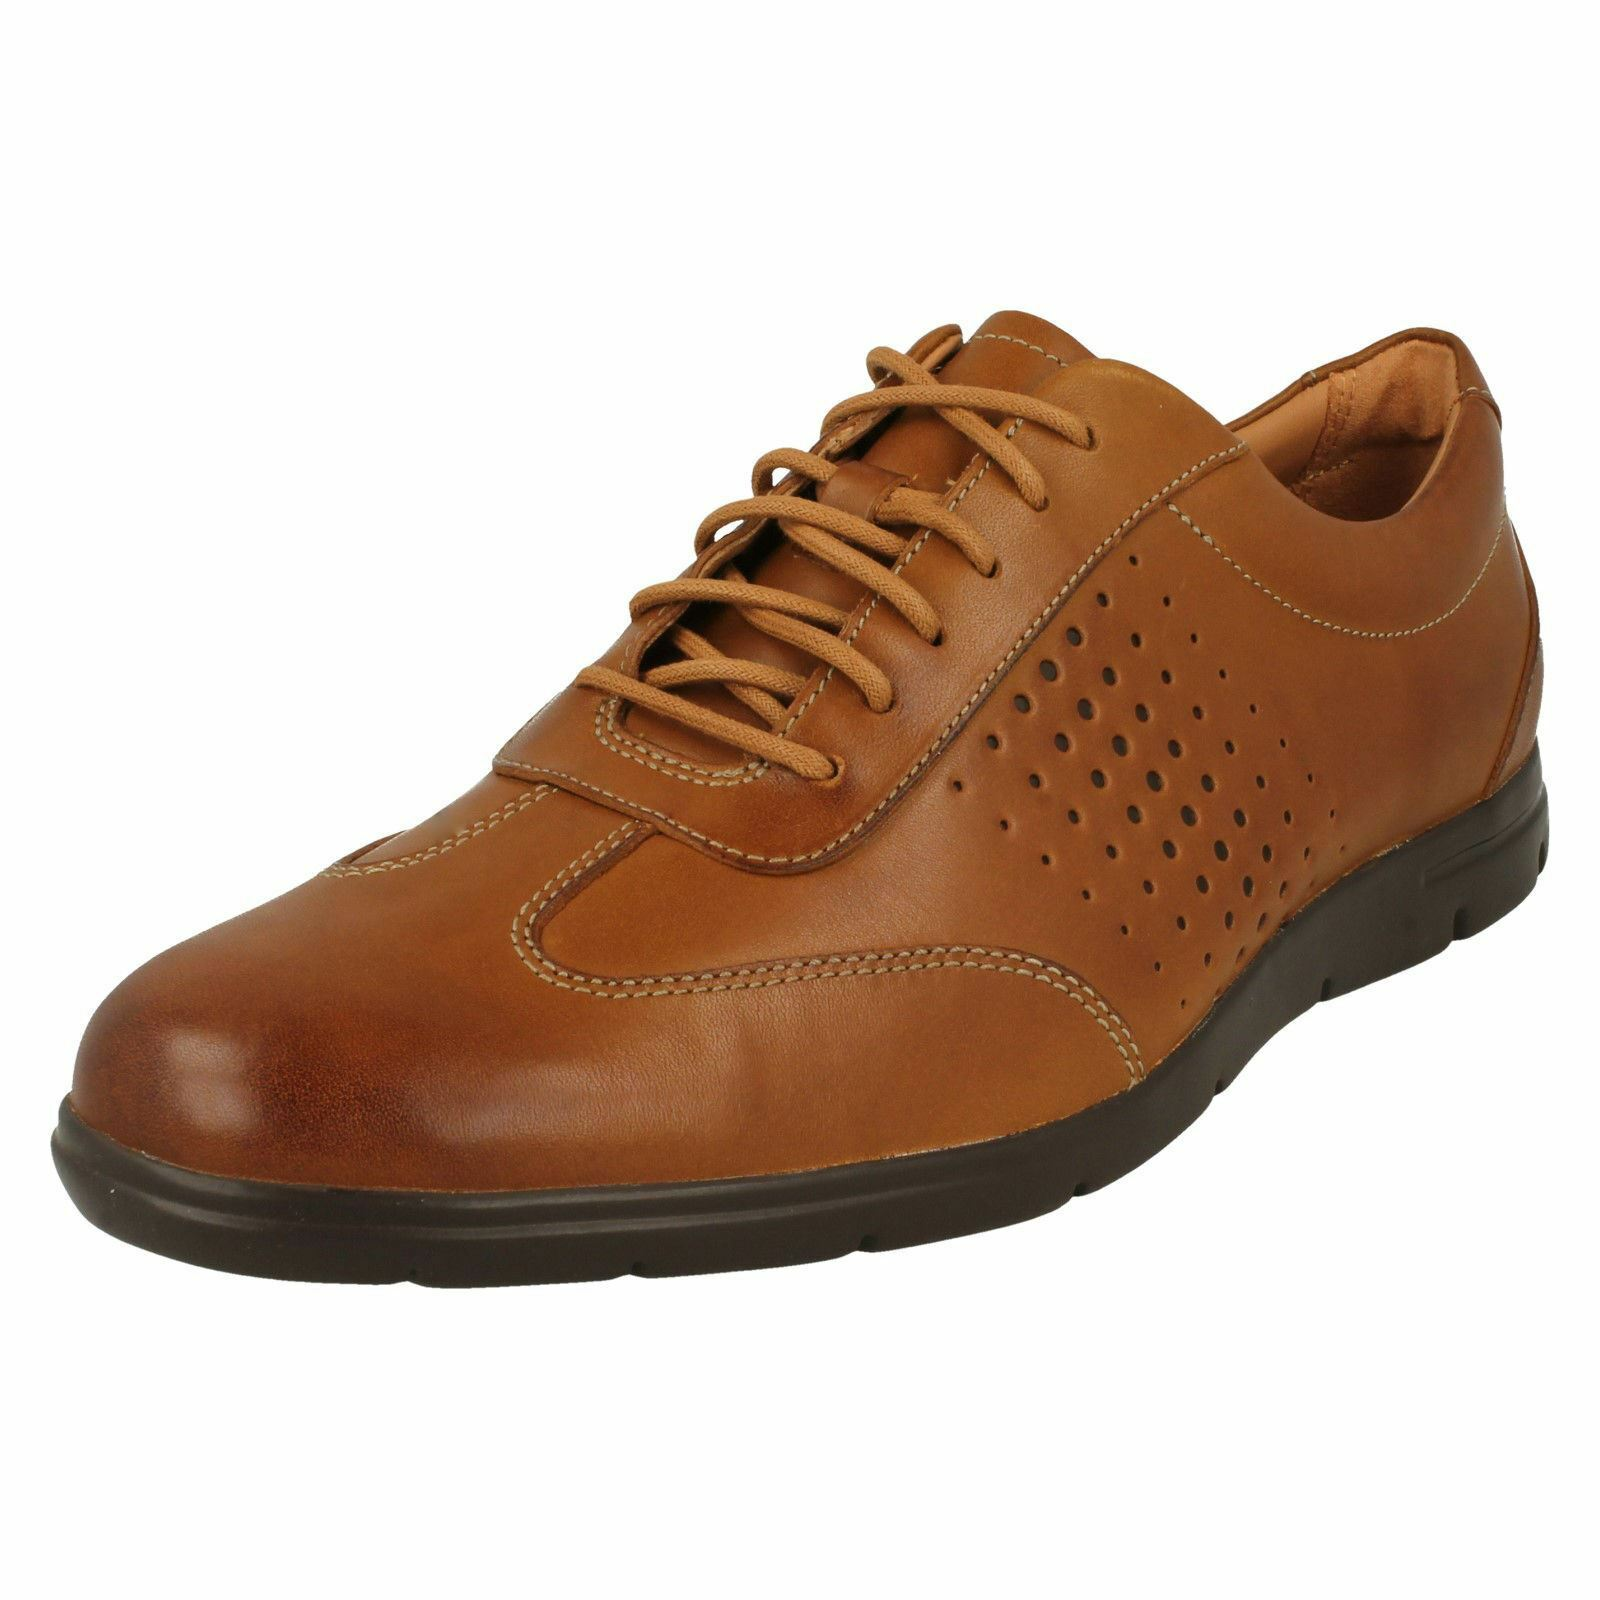 Mens Casual Lace Up shoes Clarks Vennor Vibe